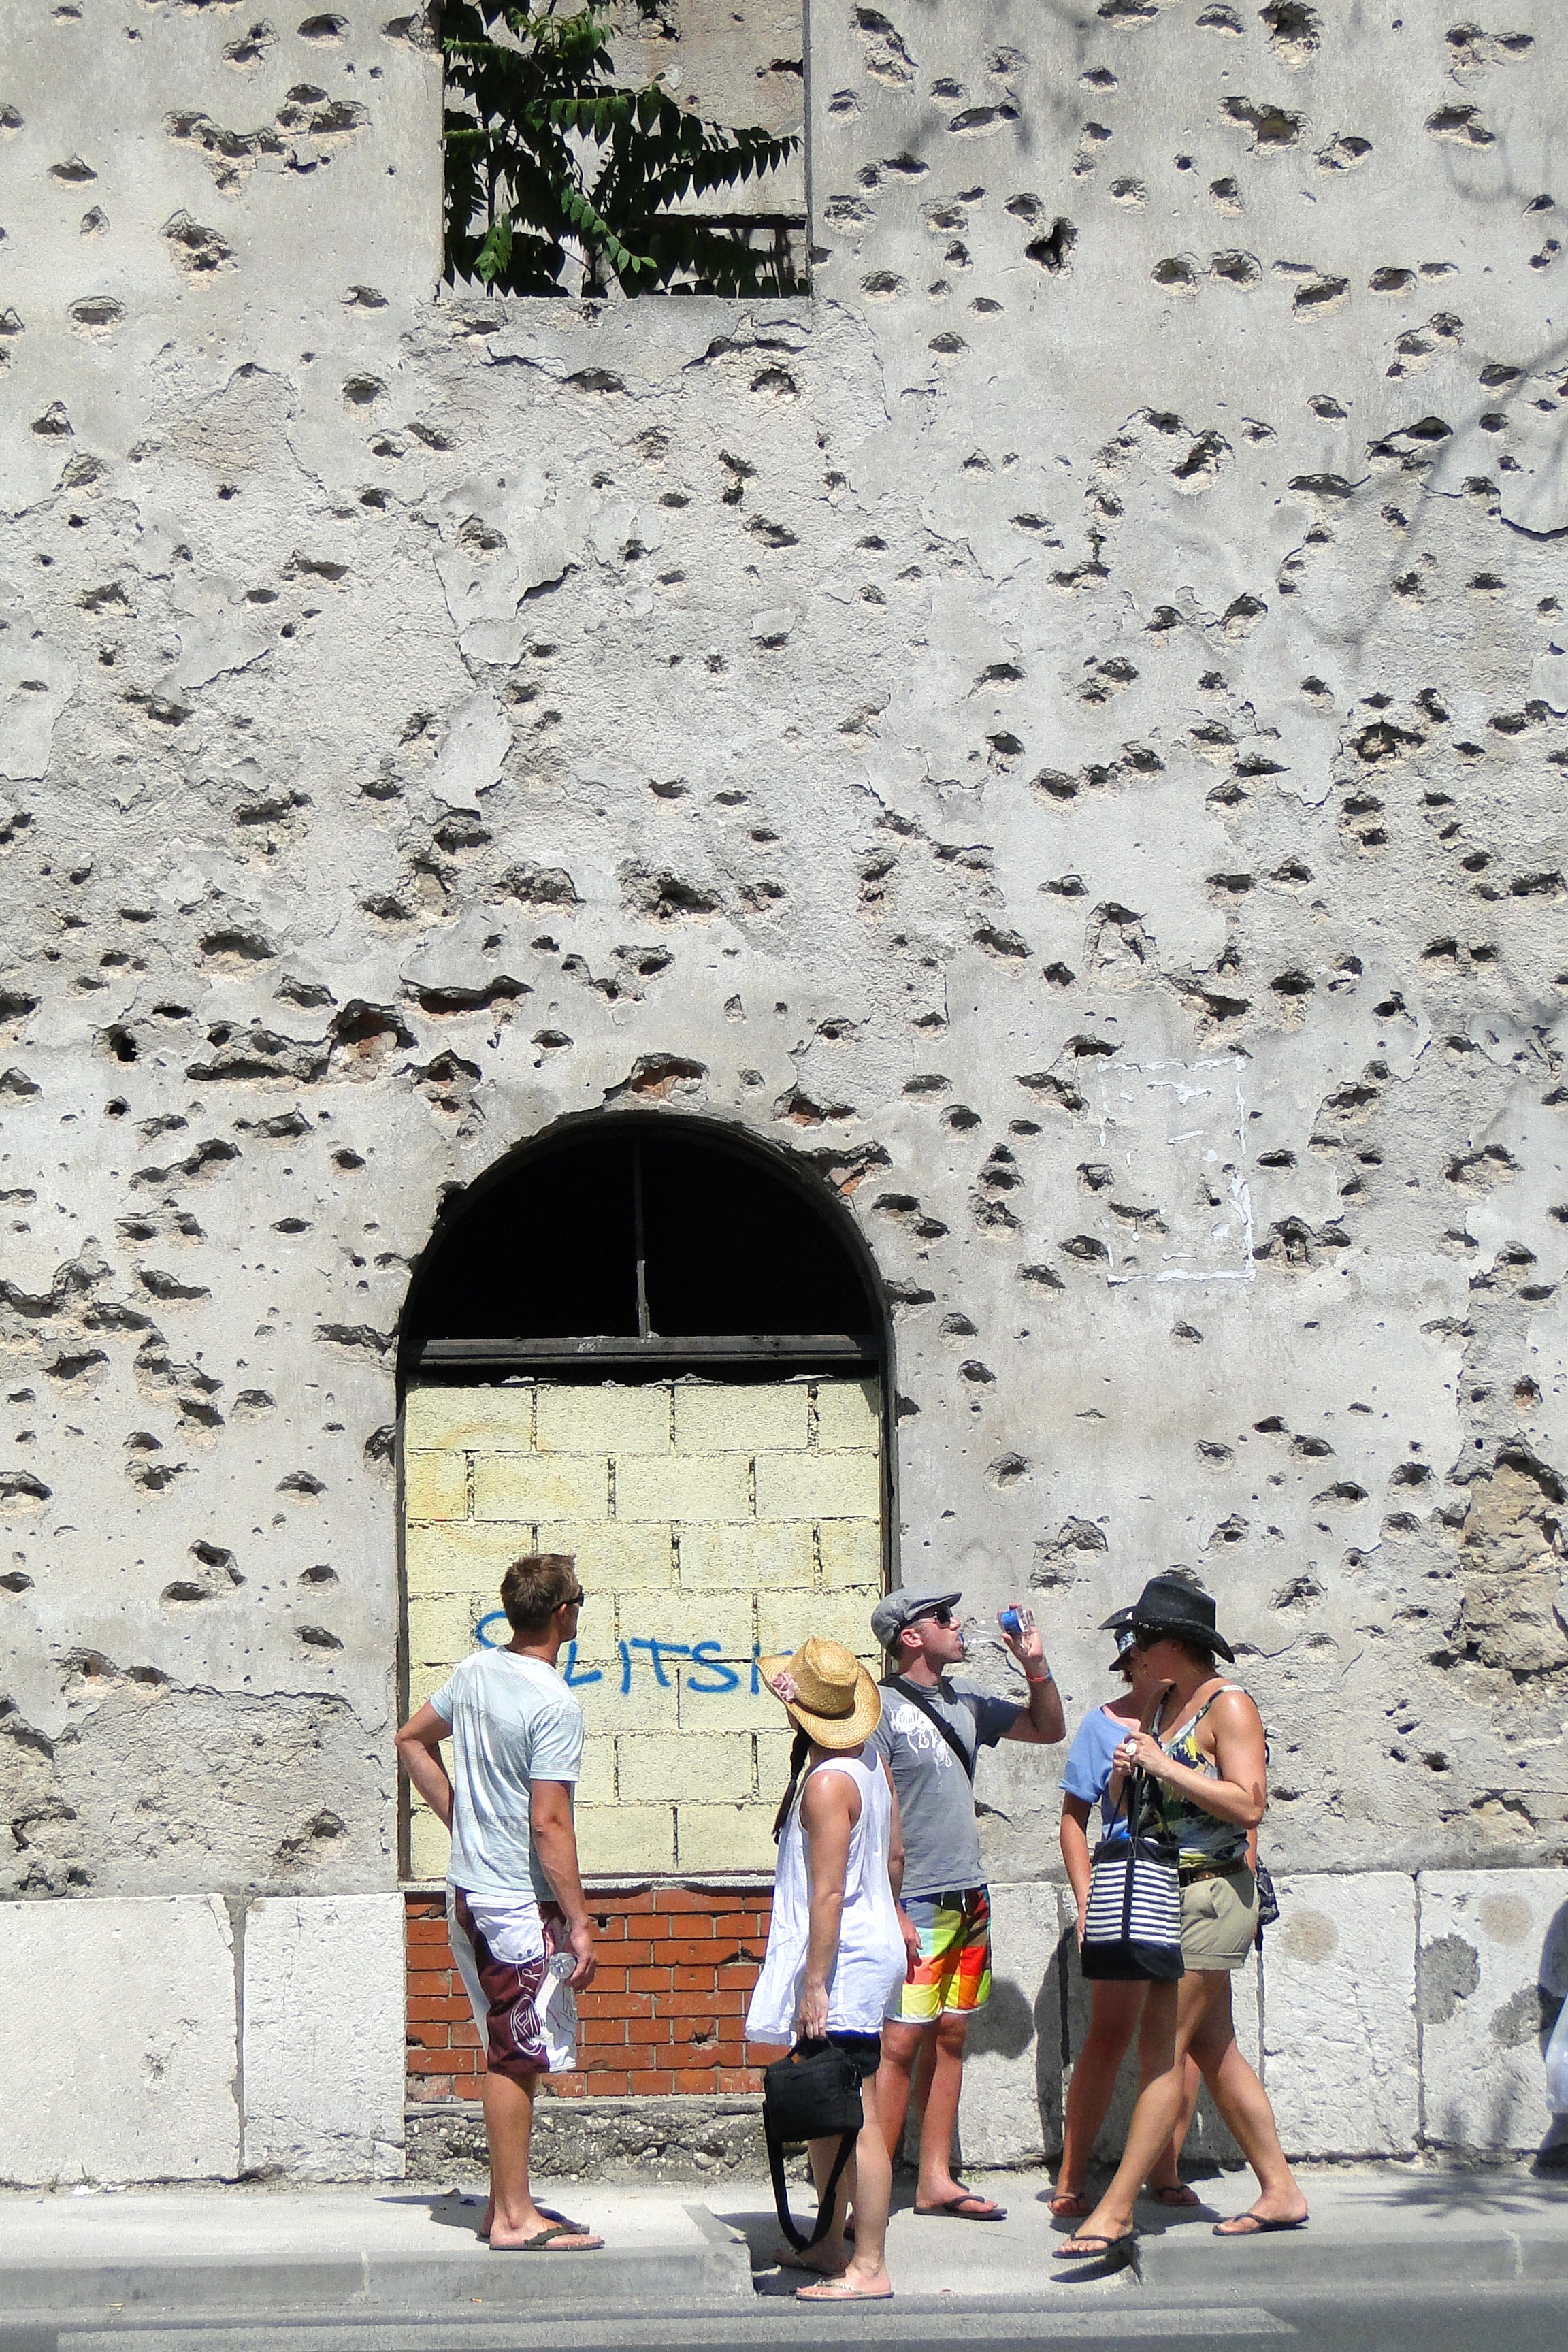 File:Visitors Stand in Front of War-Damaged Facade - Mostar - Bosnia and